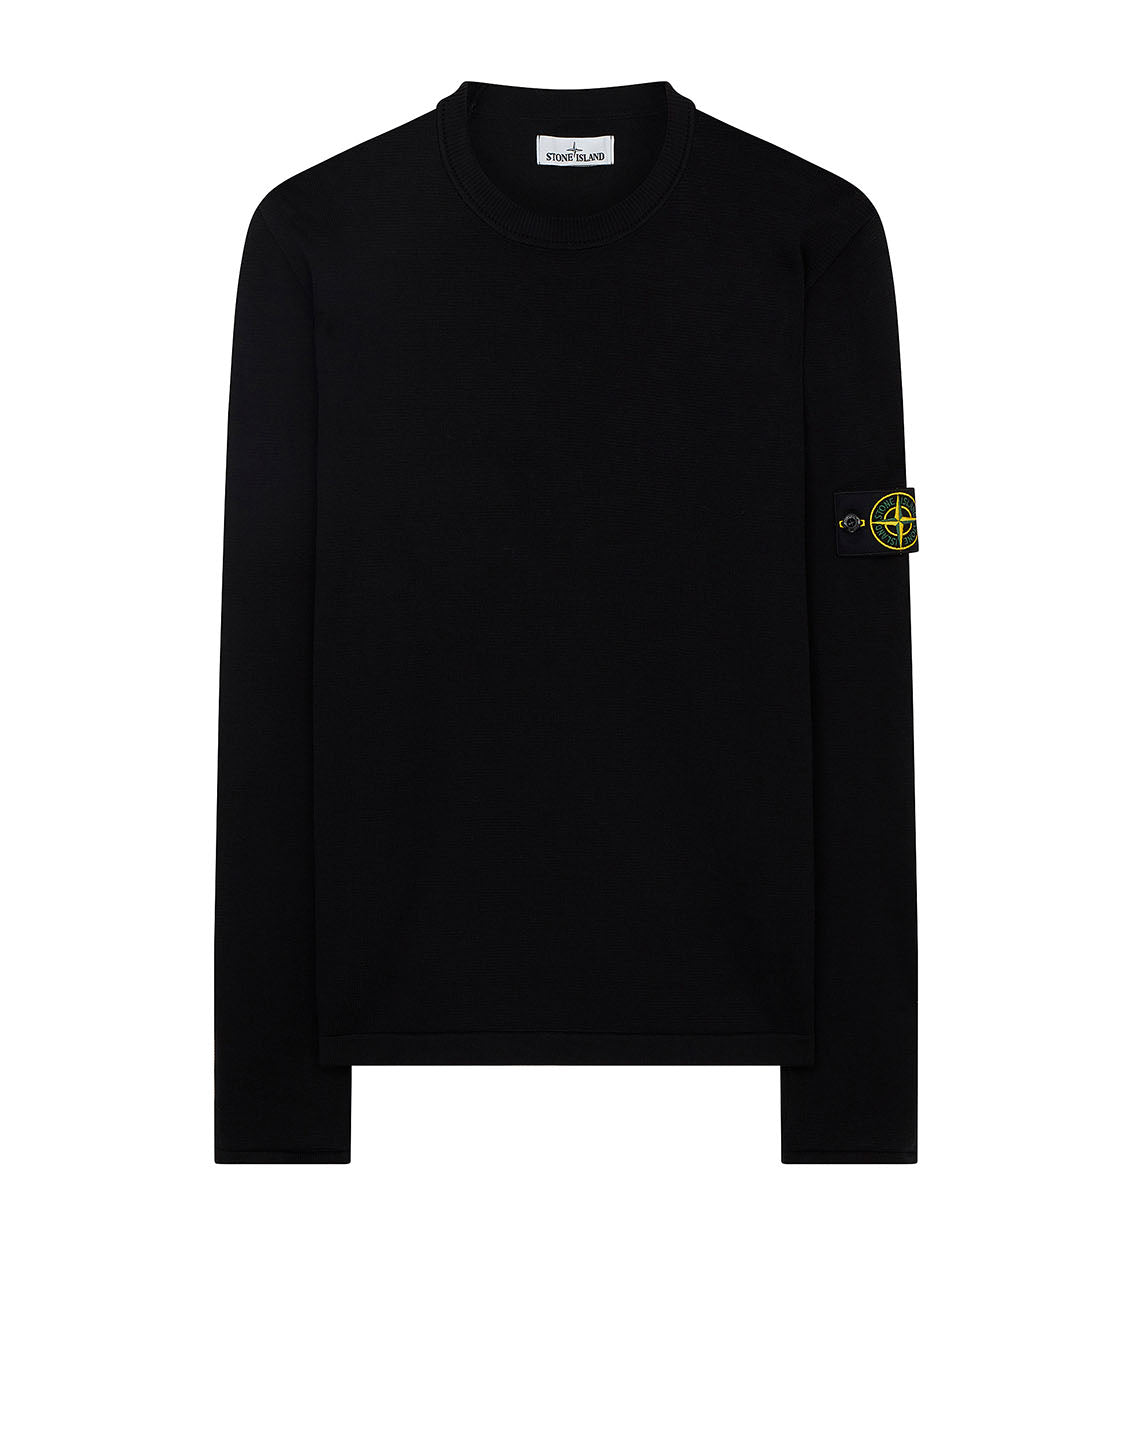 517B3 Knitwear in Black